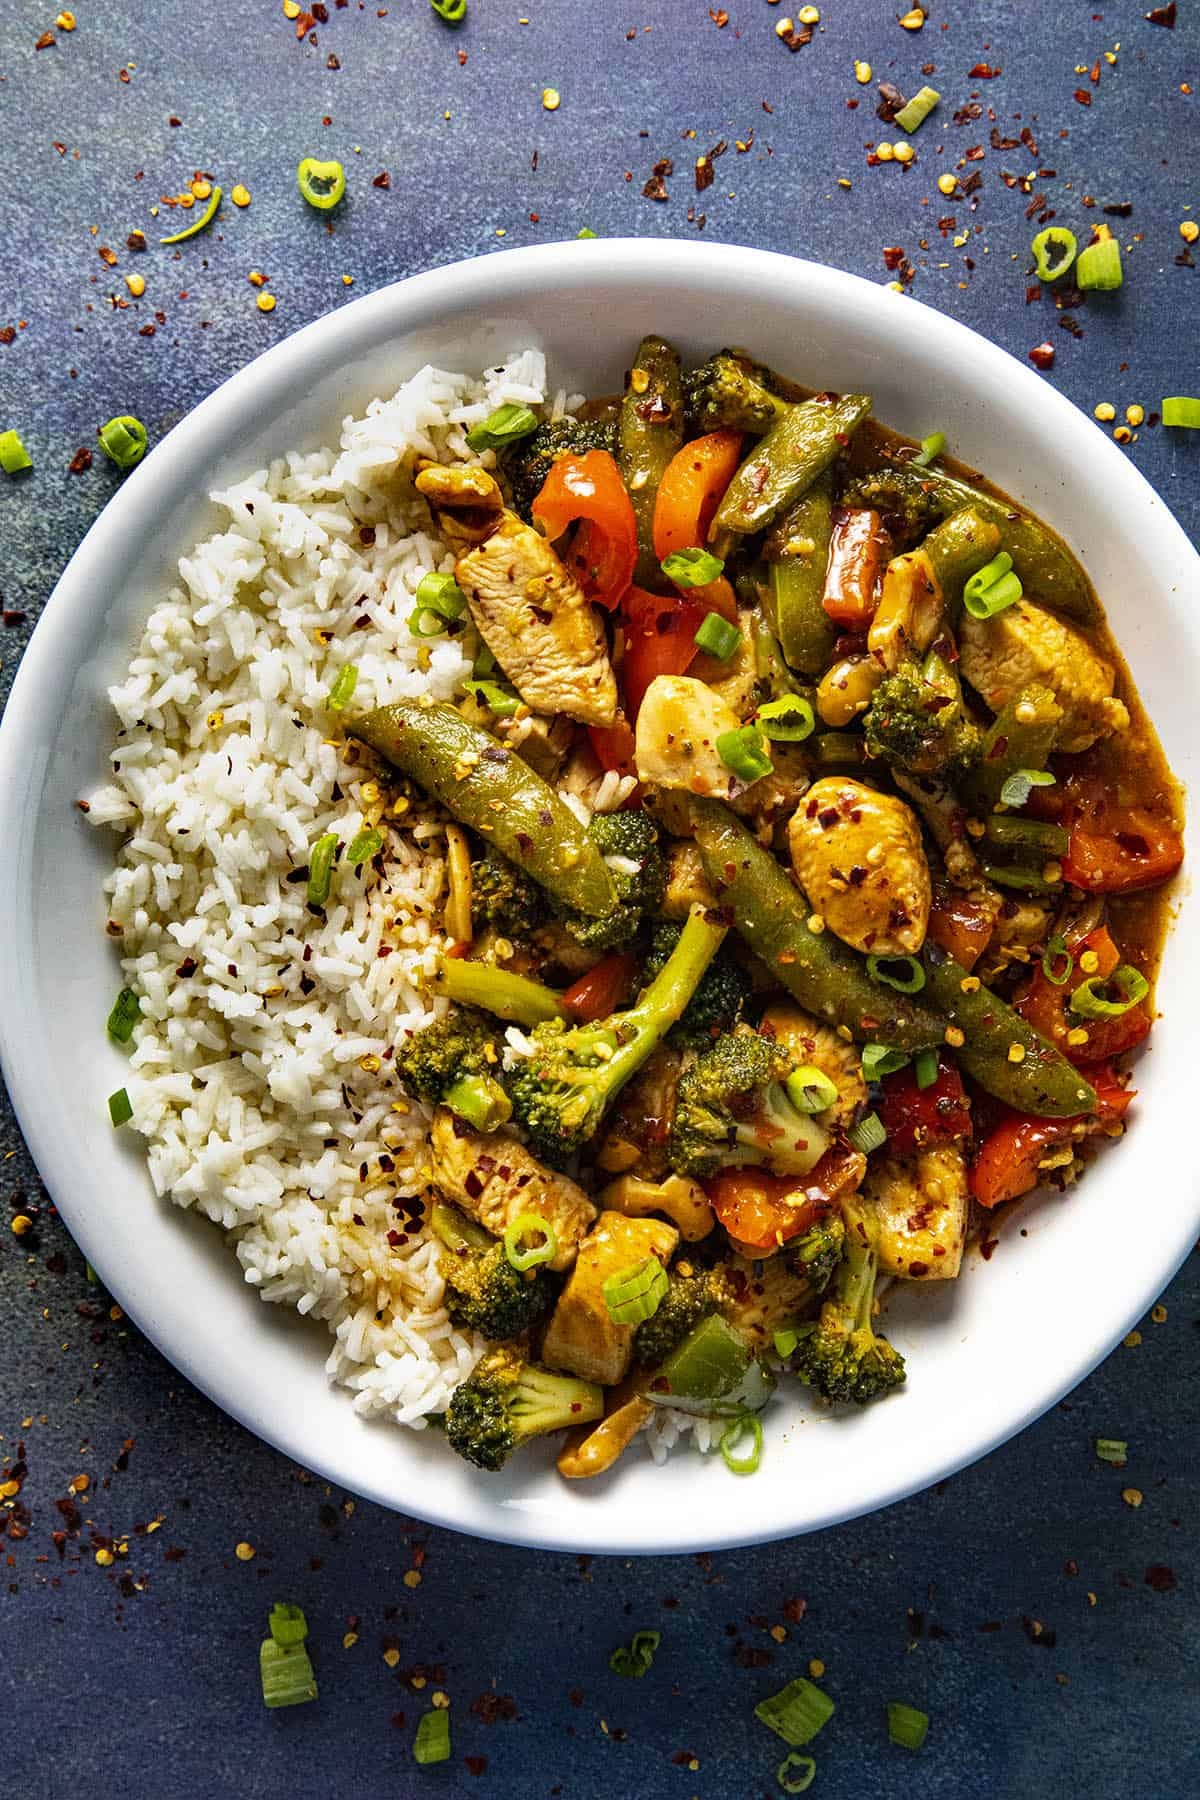 Chicken Stir Fry in a bowl with rice and spicy chili flakes